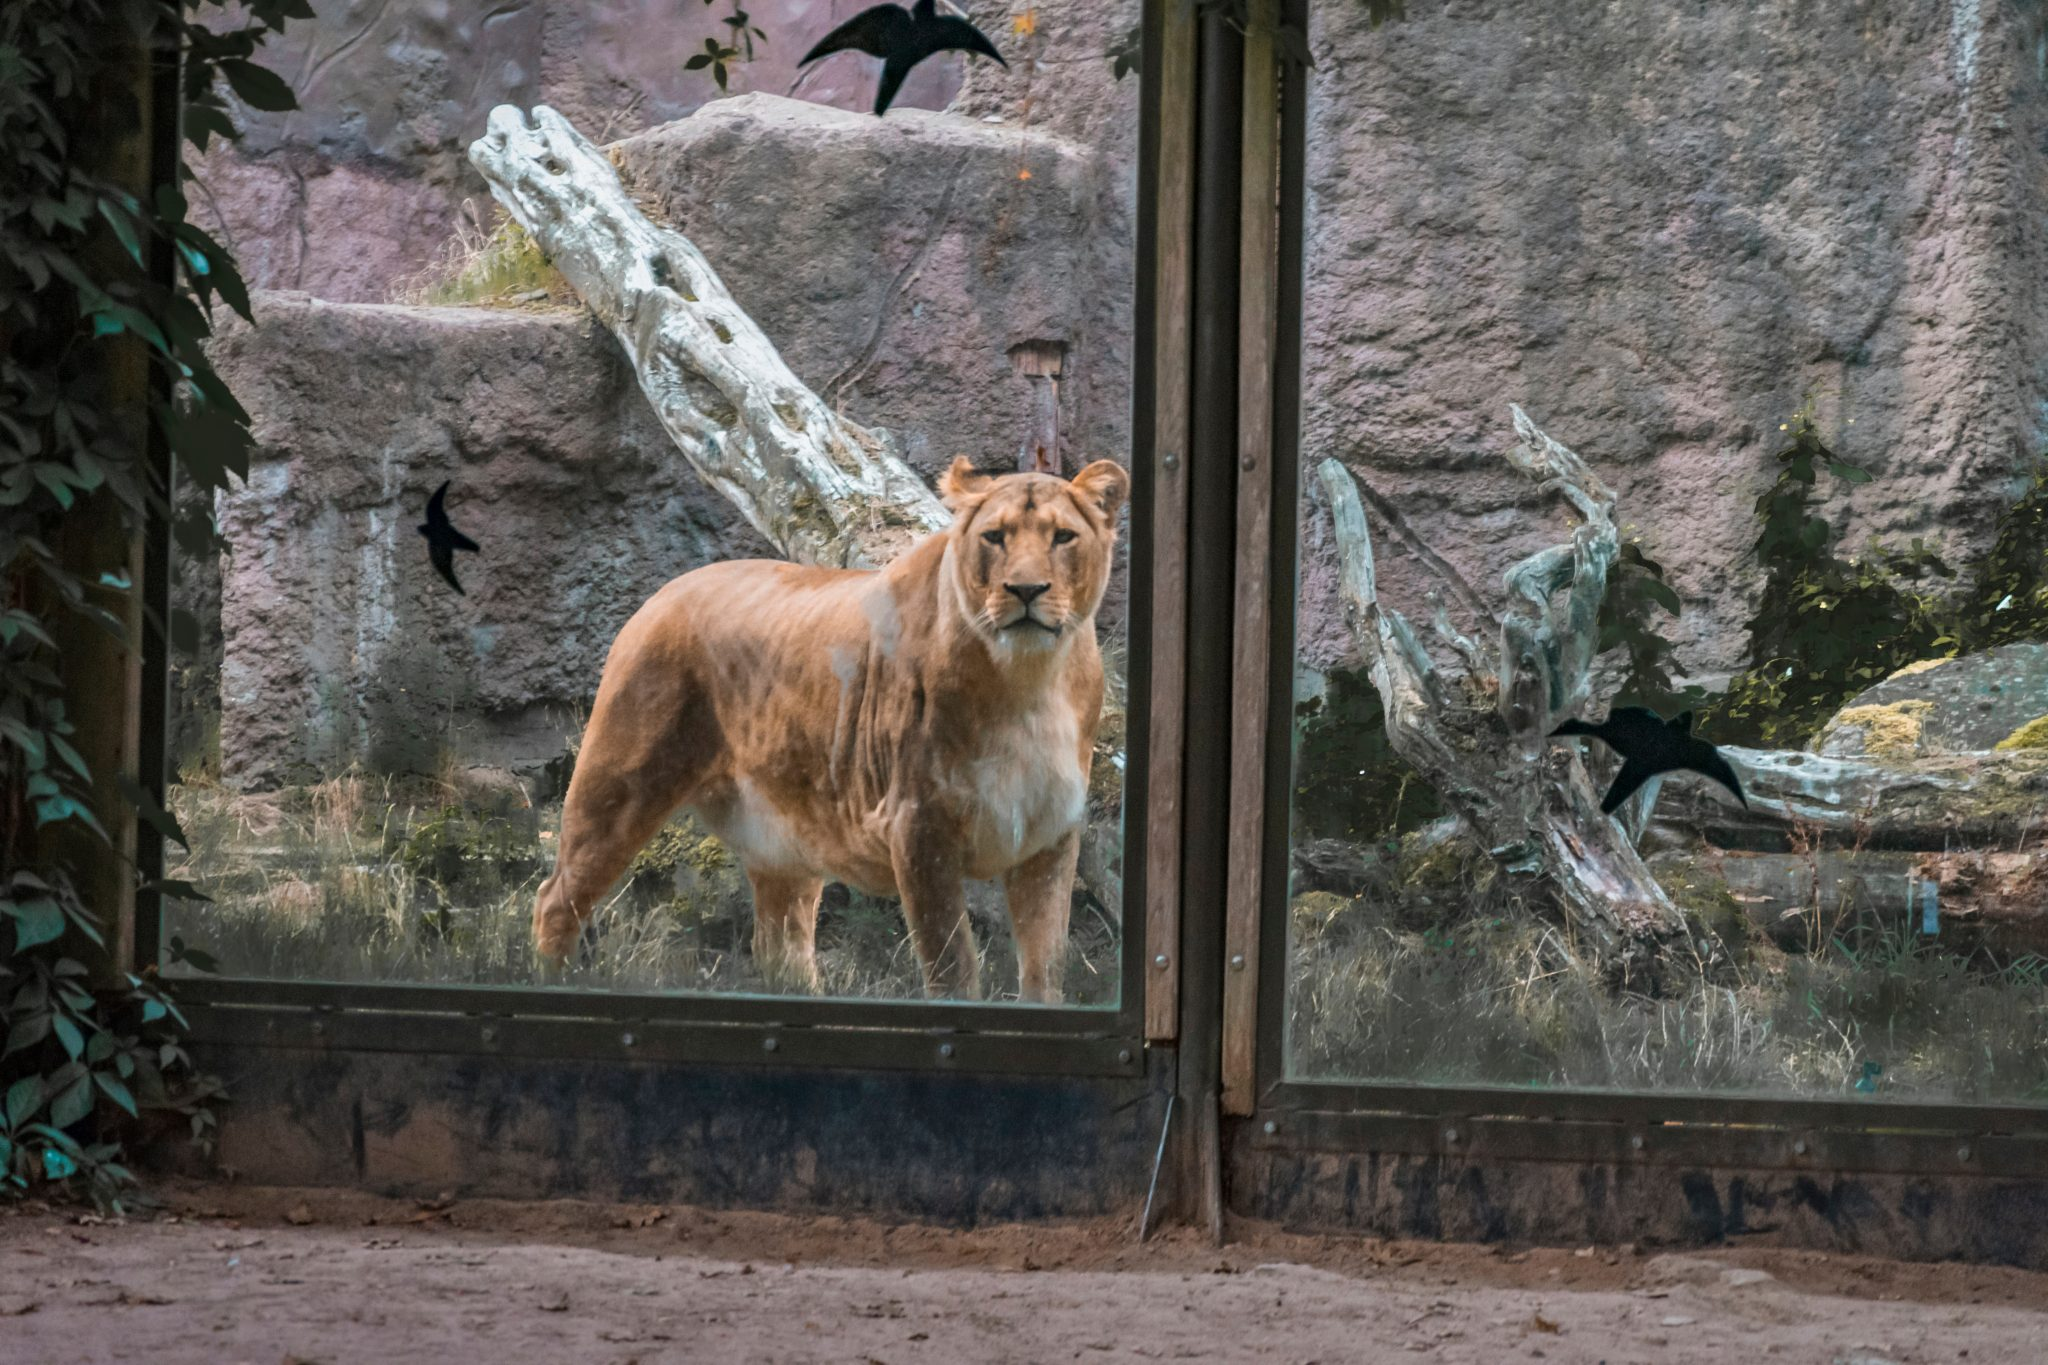 Are Zoos Vital for Education or Conservation?